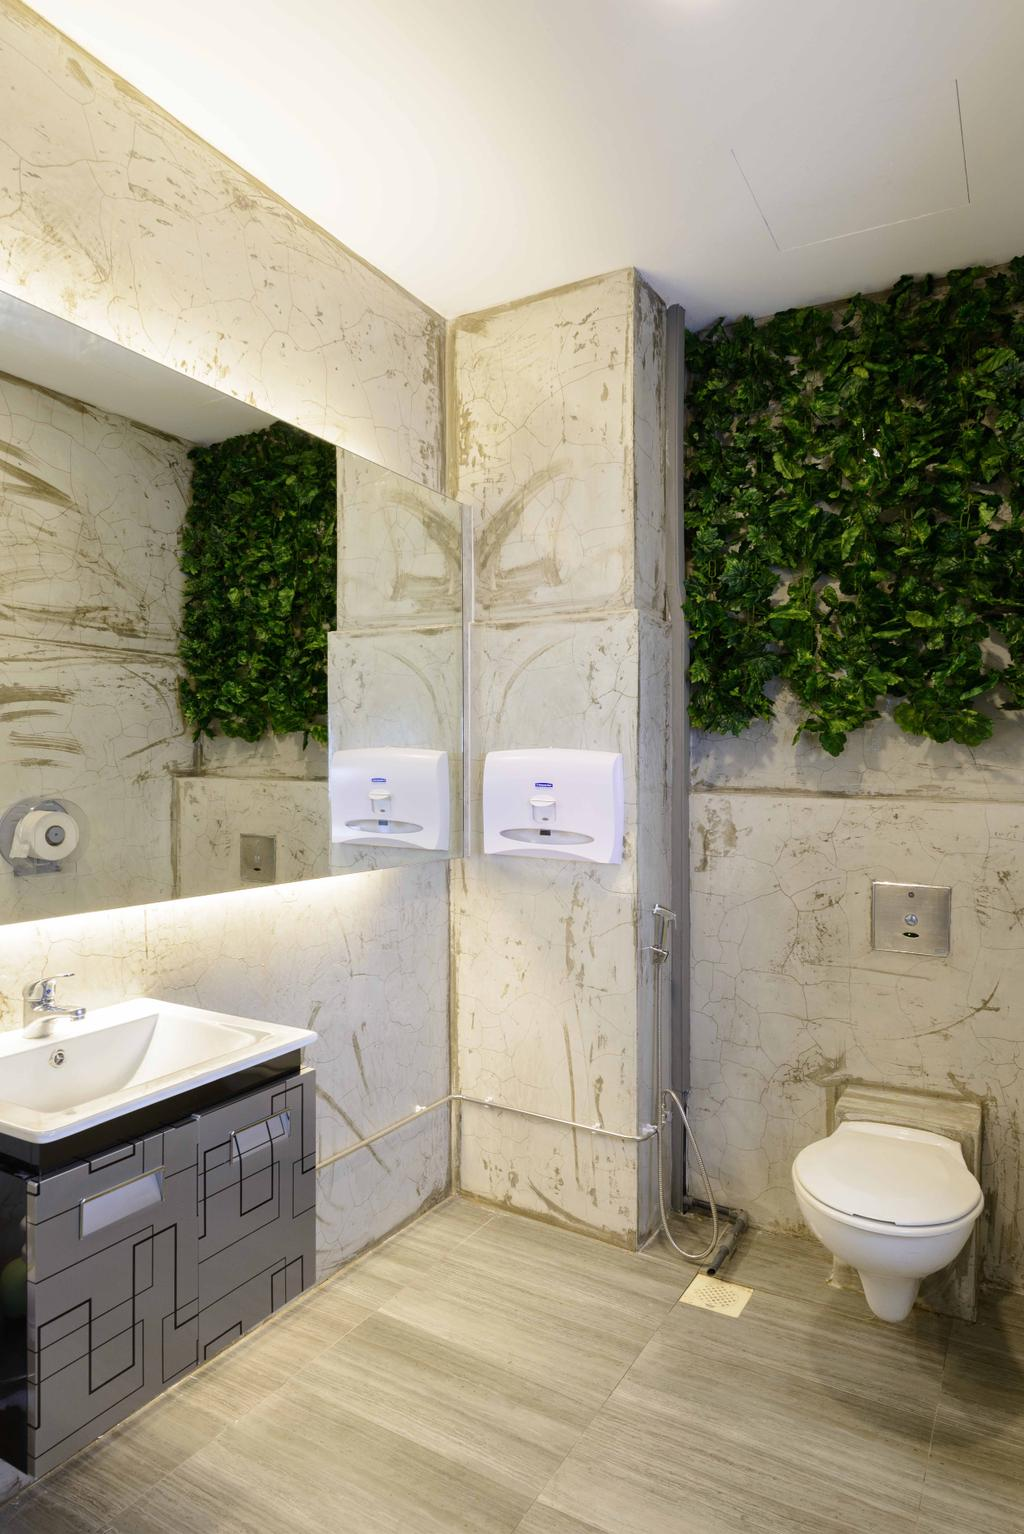 Harission Road, Commercial, Interior Designer, Starry Homestead, Scandinavian, Bathroom, Laminate Flooring, Wooden Laminate, Light Wood, Wall Plants, Mirror, White Sink, Wall Mounted Sink, Sink, Flora, Ivy, Plant, Conifer, Tree, Yew, Wall